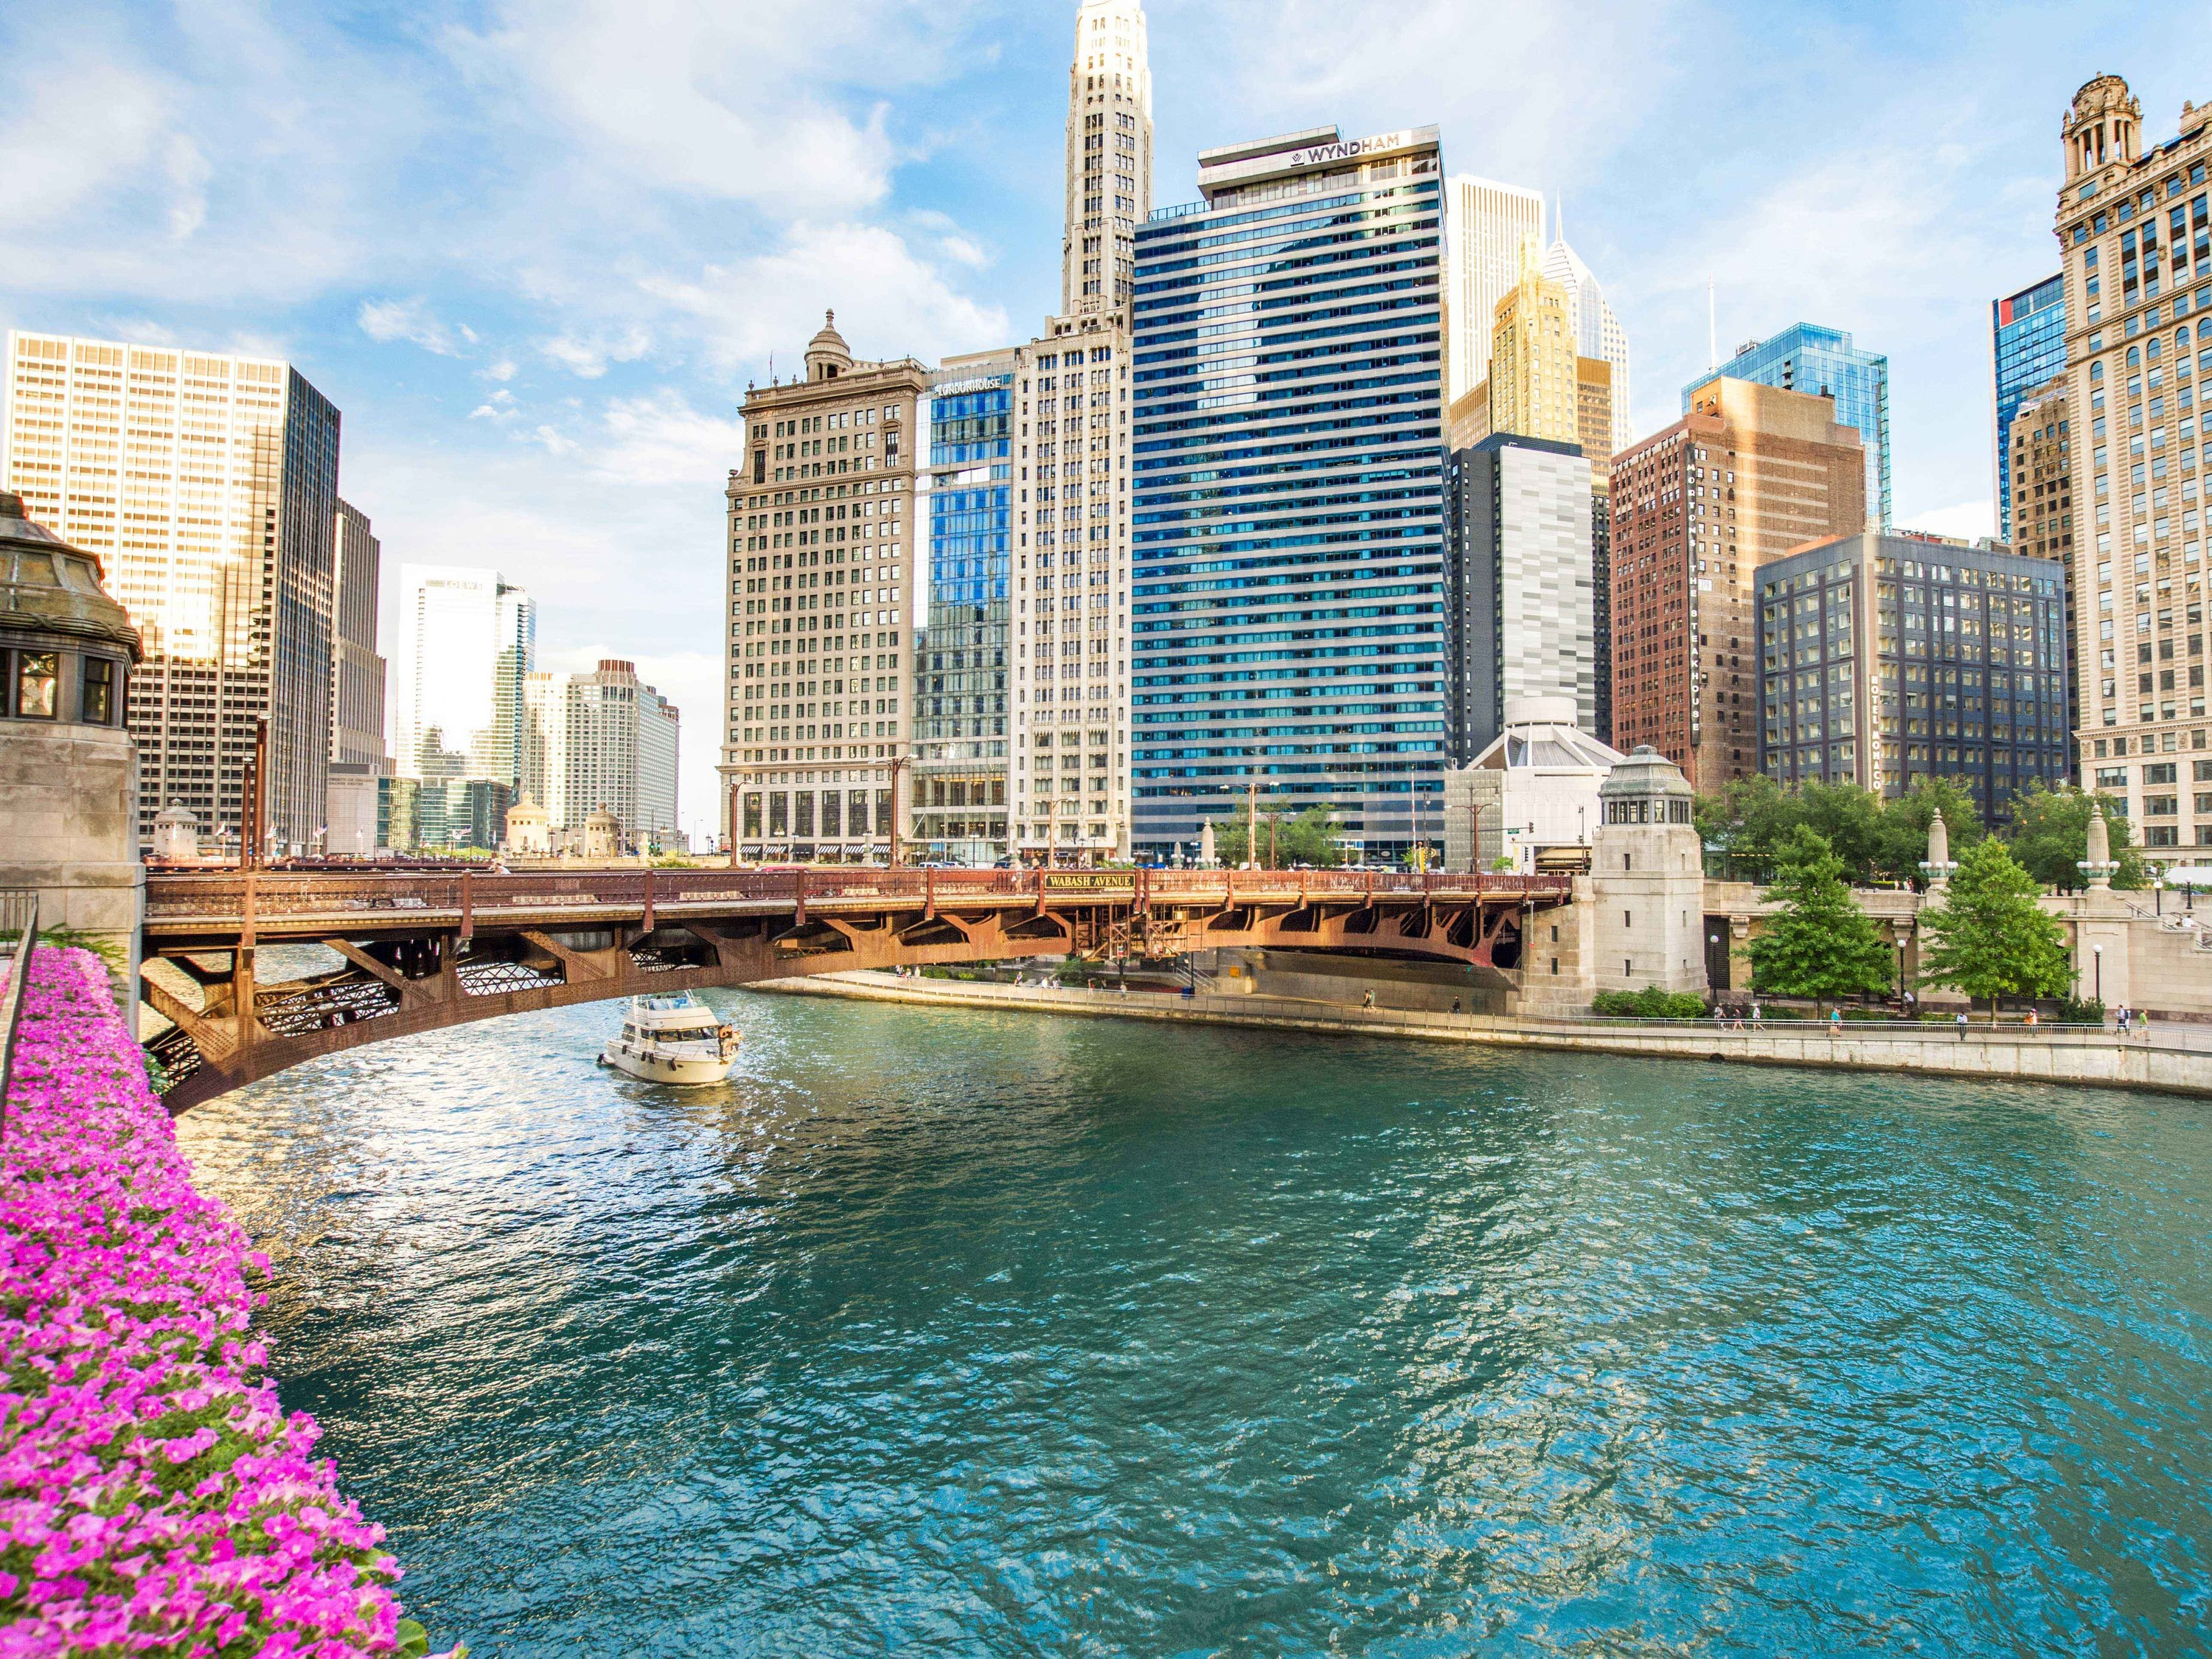 Downtown Chicago reopens today, with CTA service restored and bridges lowered